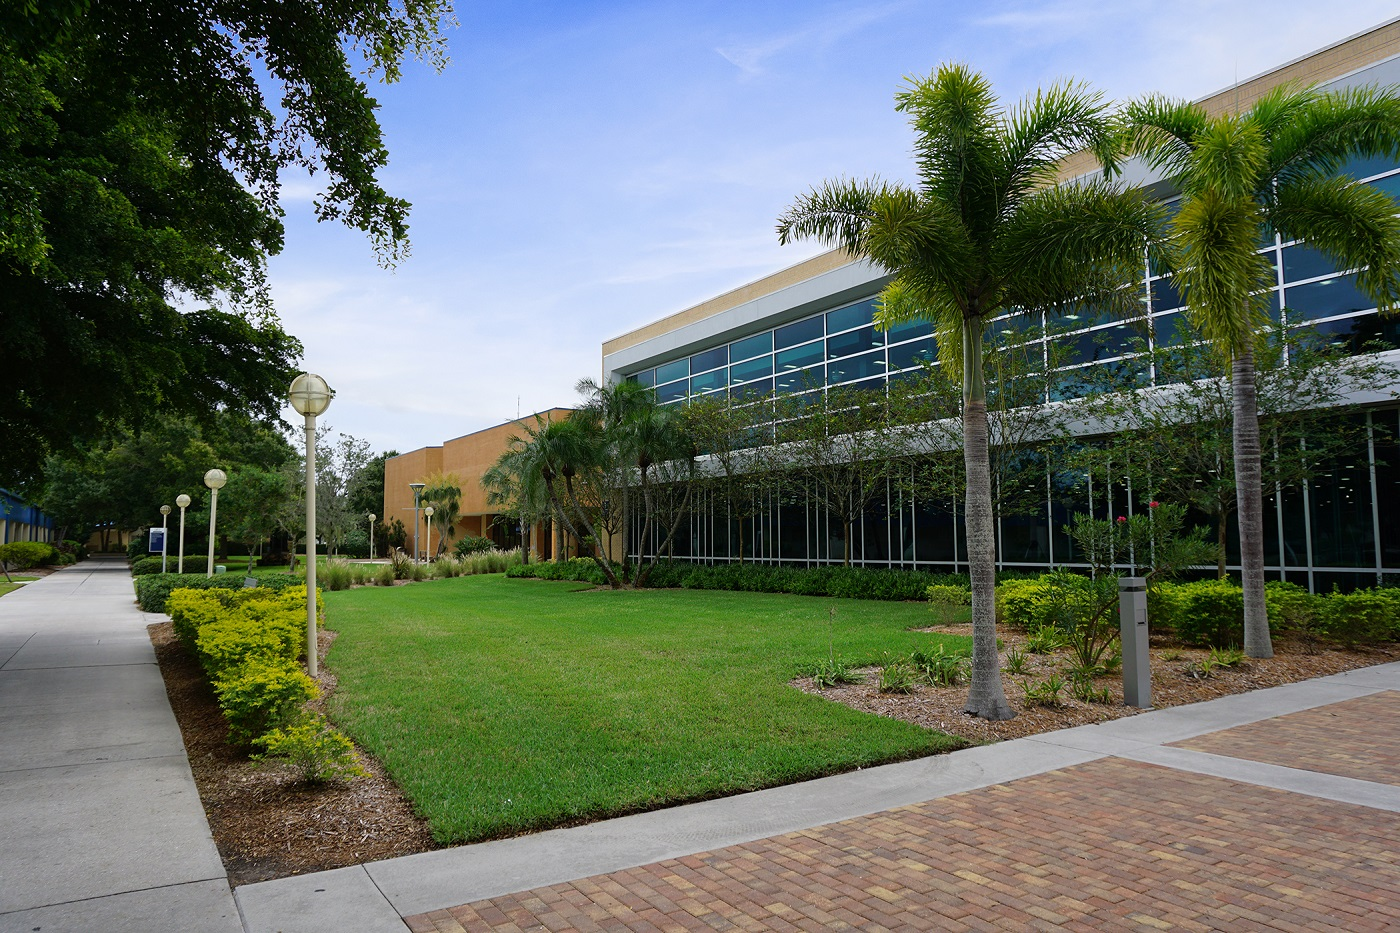 landscaping services for college campus Bradenton FL